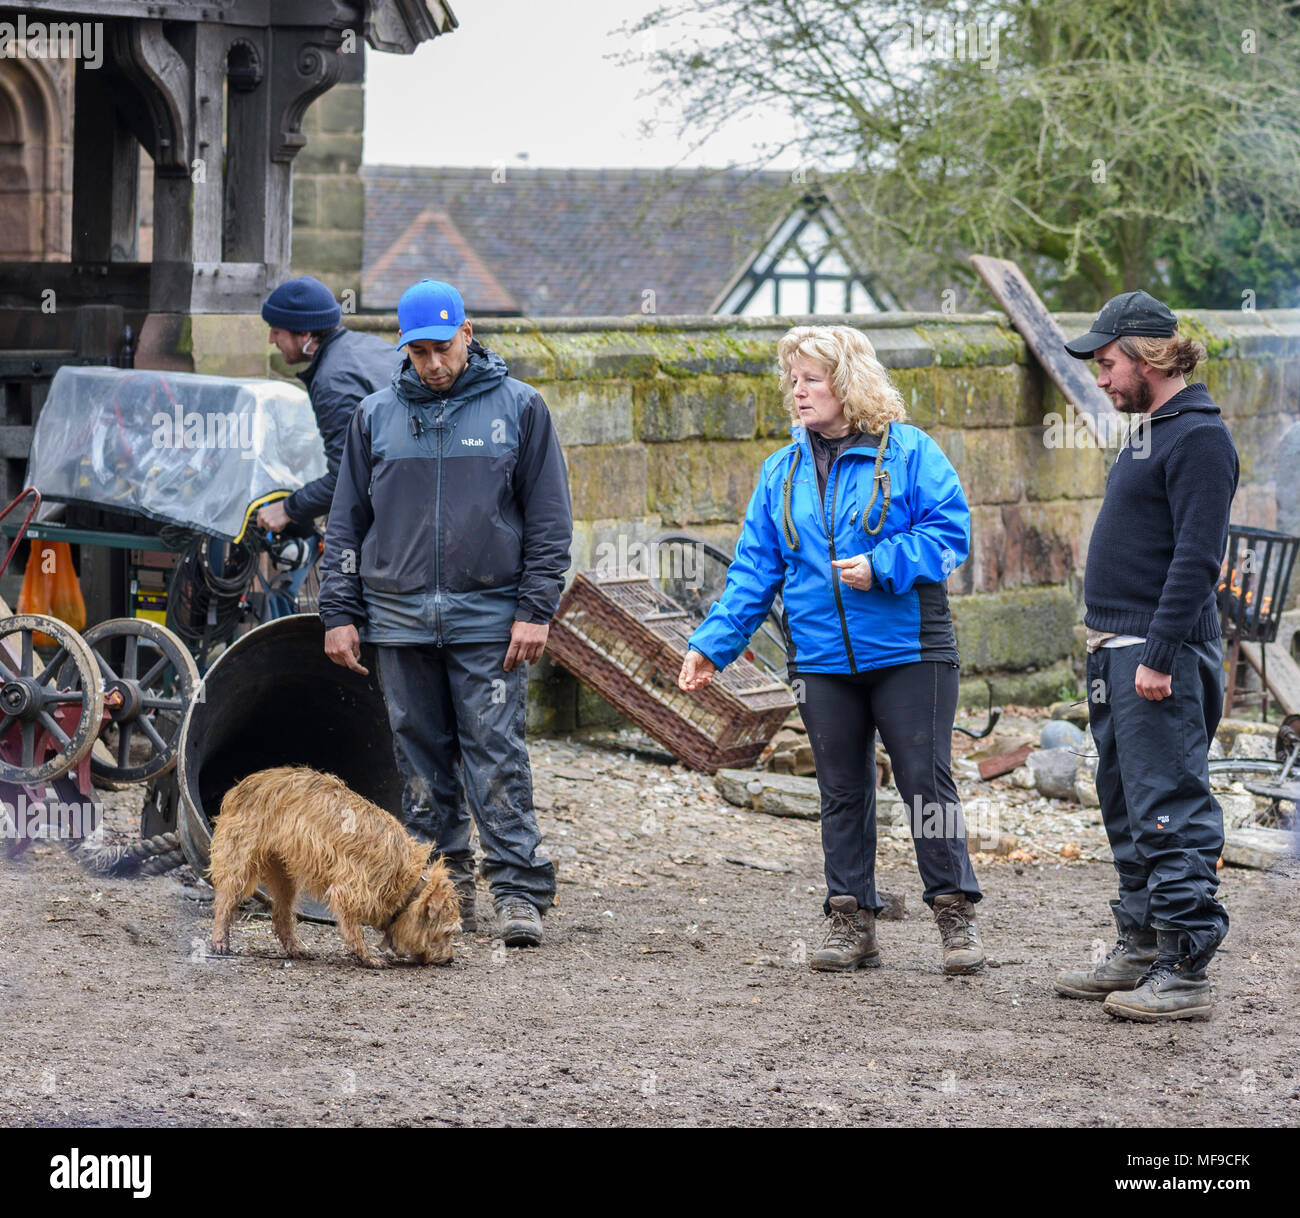 Great Budworth, UK. 11th April, 2018. Director Craig Viveiros and dog trainer preparing to shoot a scene on the set in the new BBC drama 'War Of The W - Stock Image